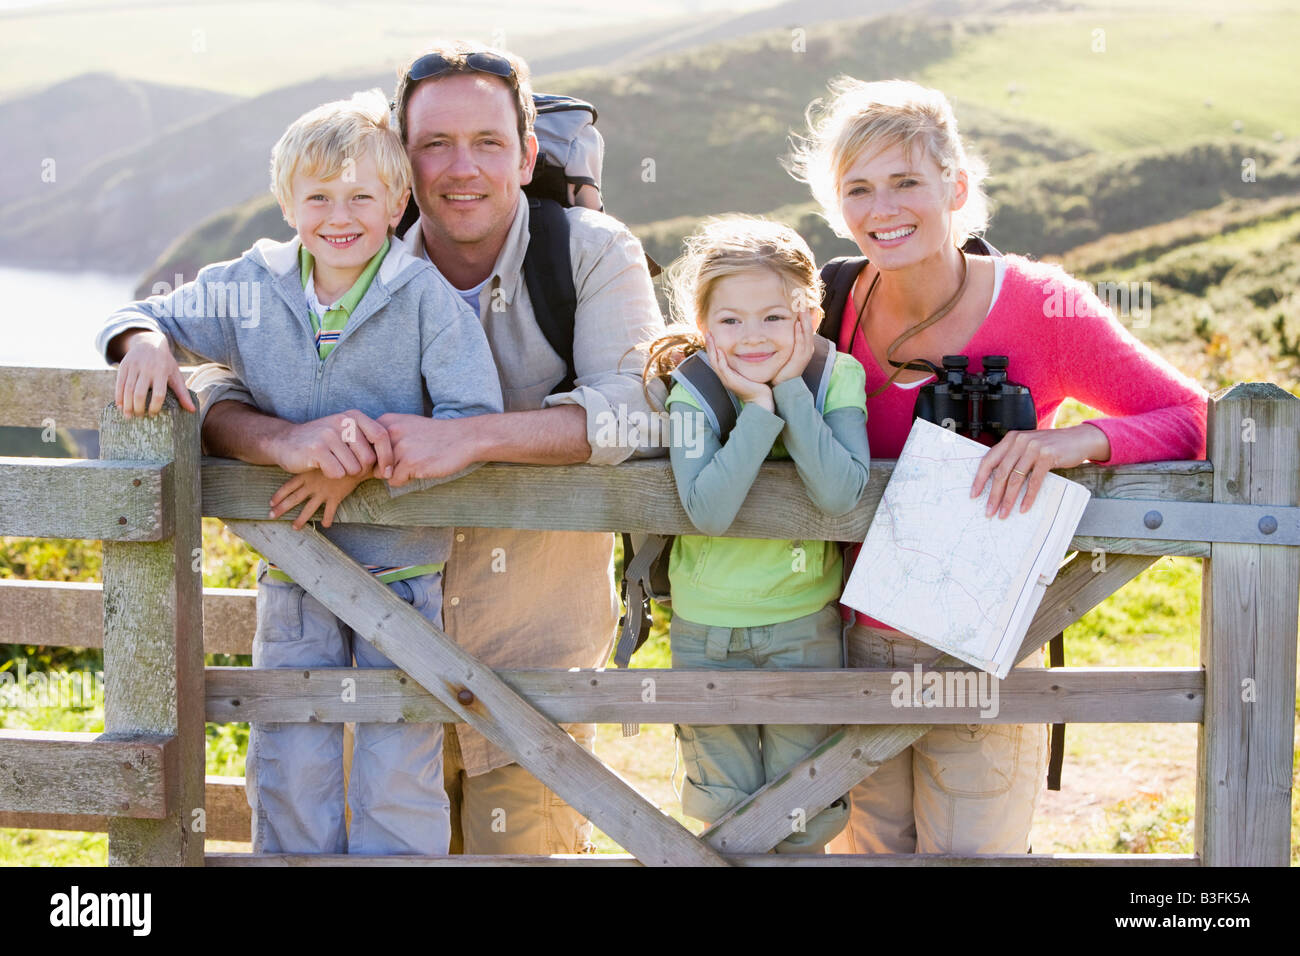 Family on cliffside path leaning on fence and smiling - Stock Image